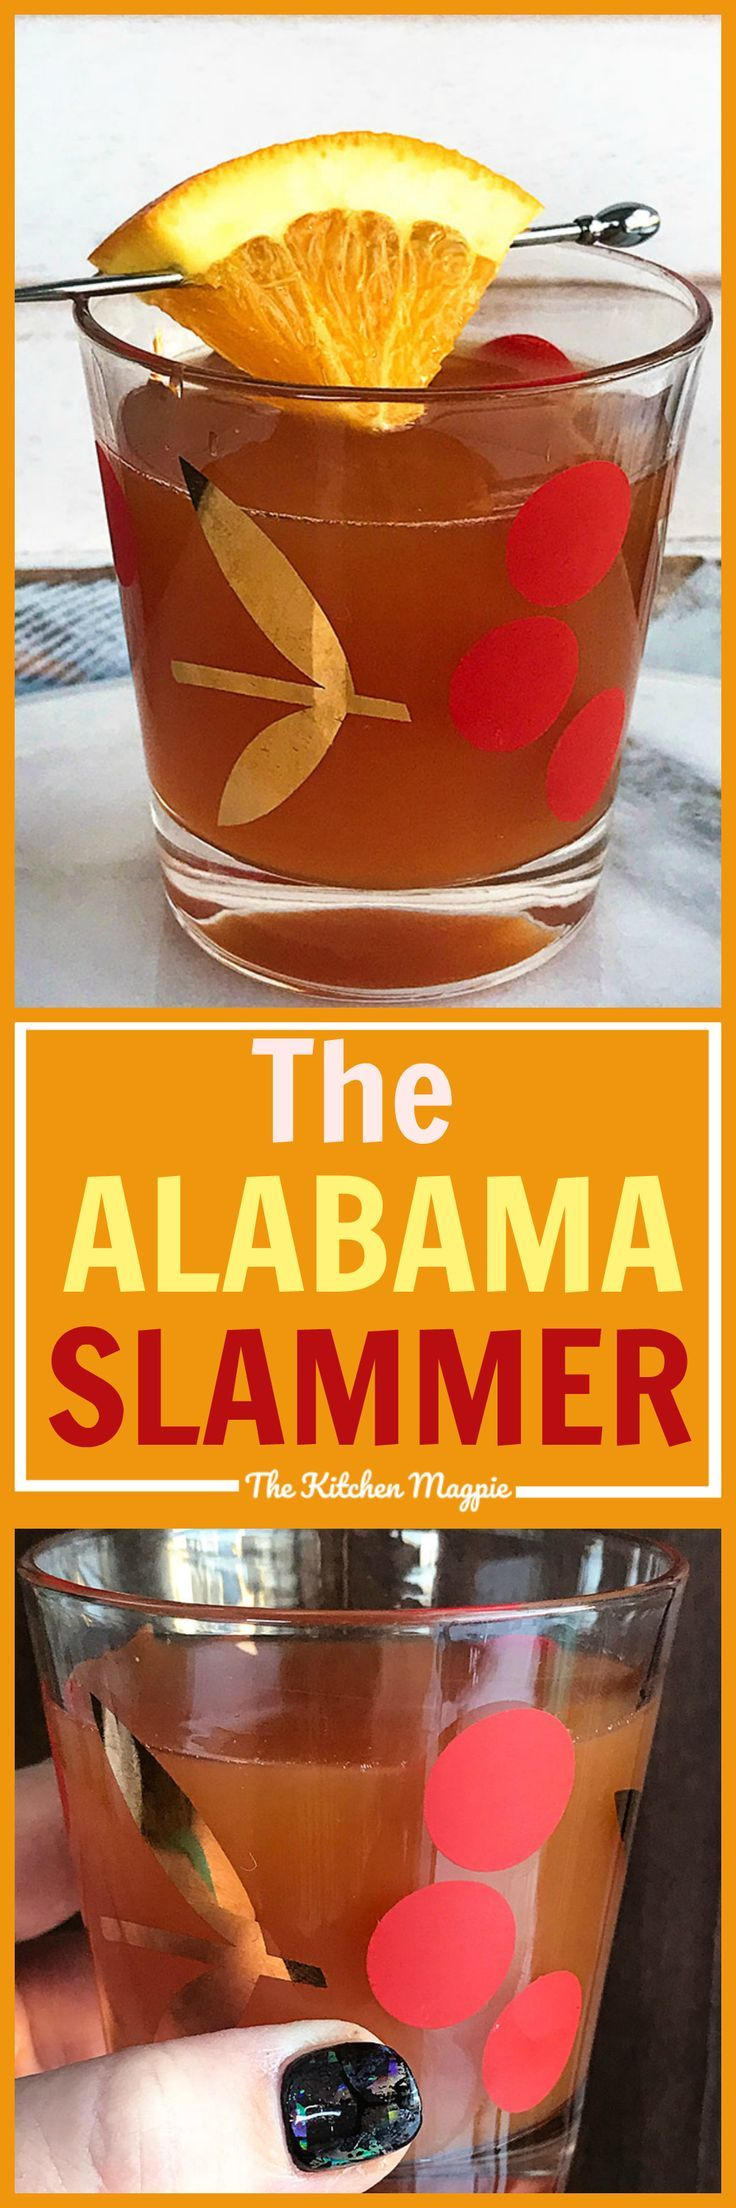 The Alabama Slammer Cocktail! Sweet, tangy and sure to become one of your new favourites! #cocktails #recipes #amaretto #southerncomfort